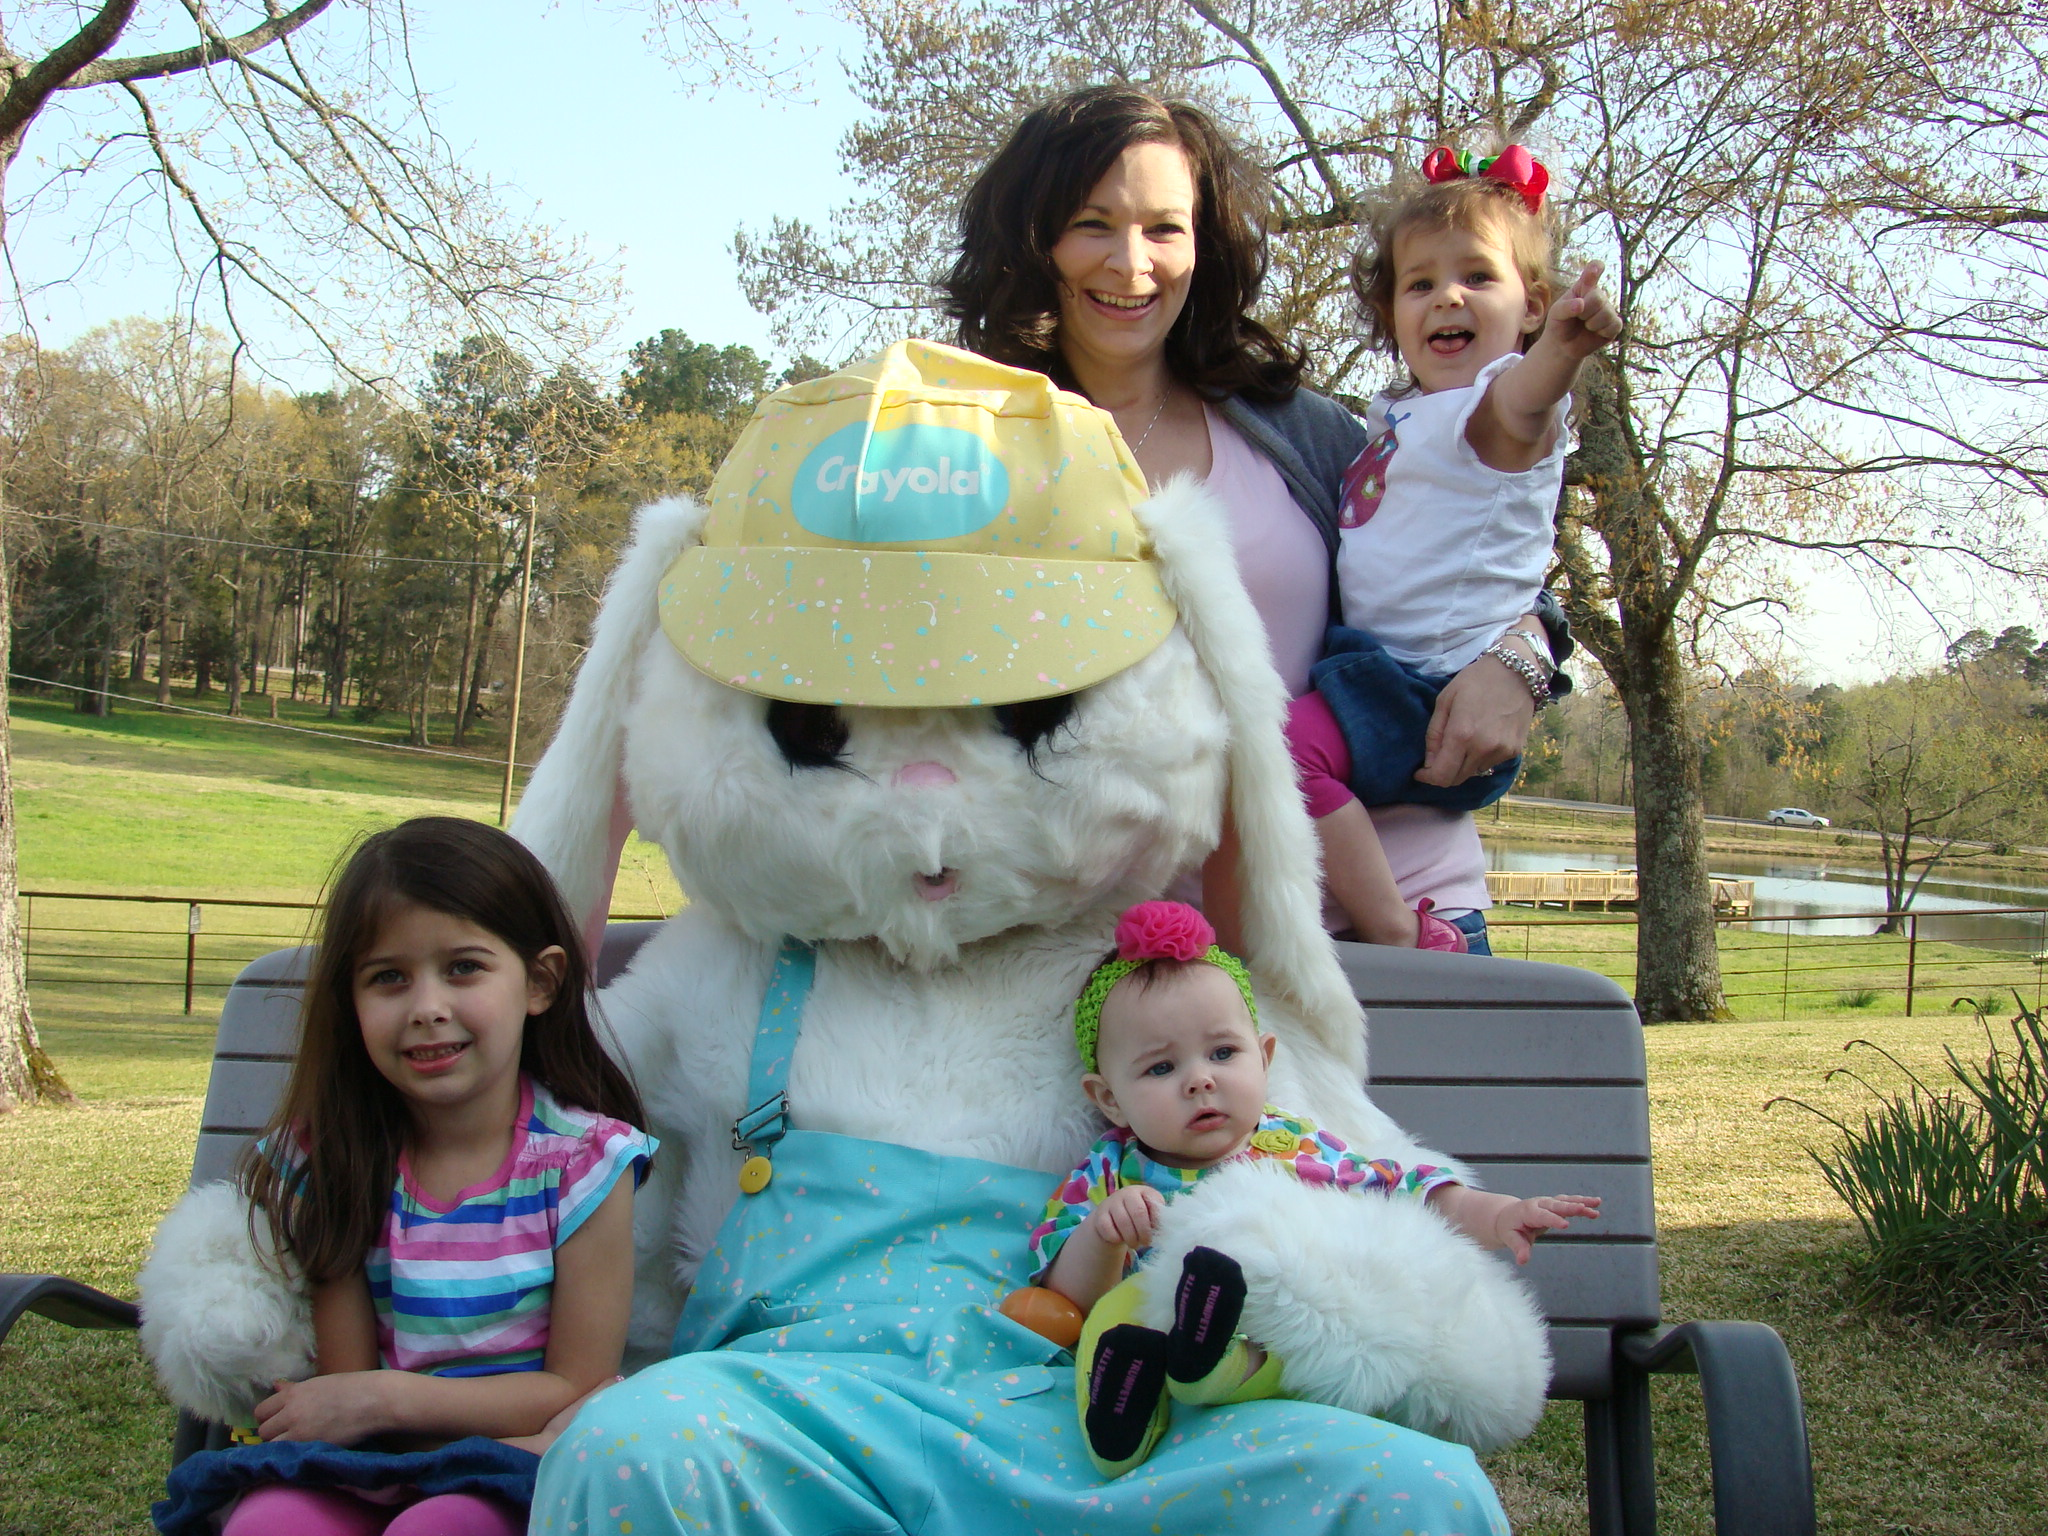 Easter Eggstravaganza/CANCELLED DUE TO COVID-19 precautions